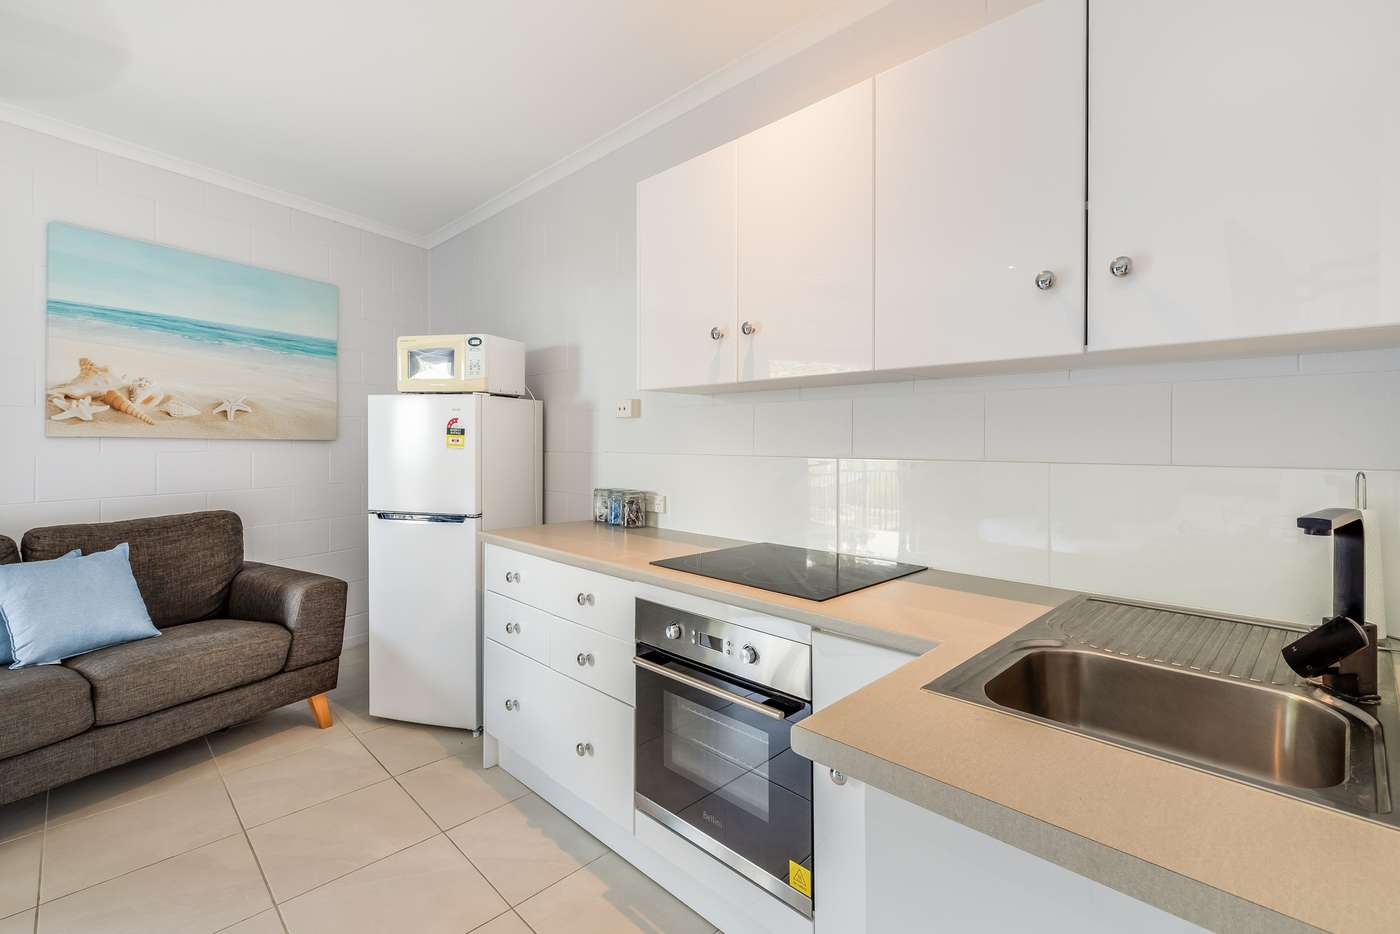 Sixth view of Homely unit listing, 15/48 Coral Esplanade, Cannonvale QLD 4802